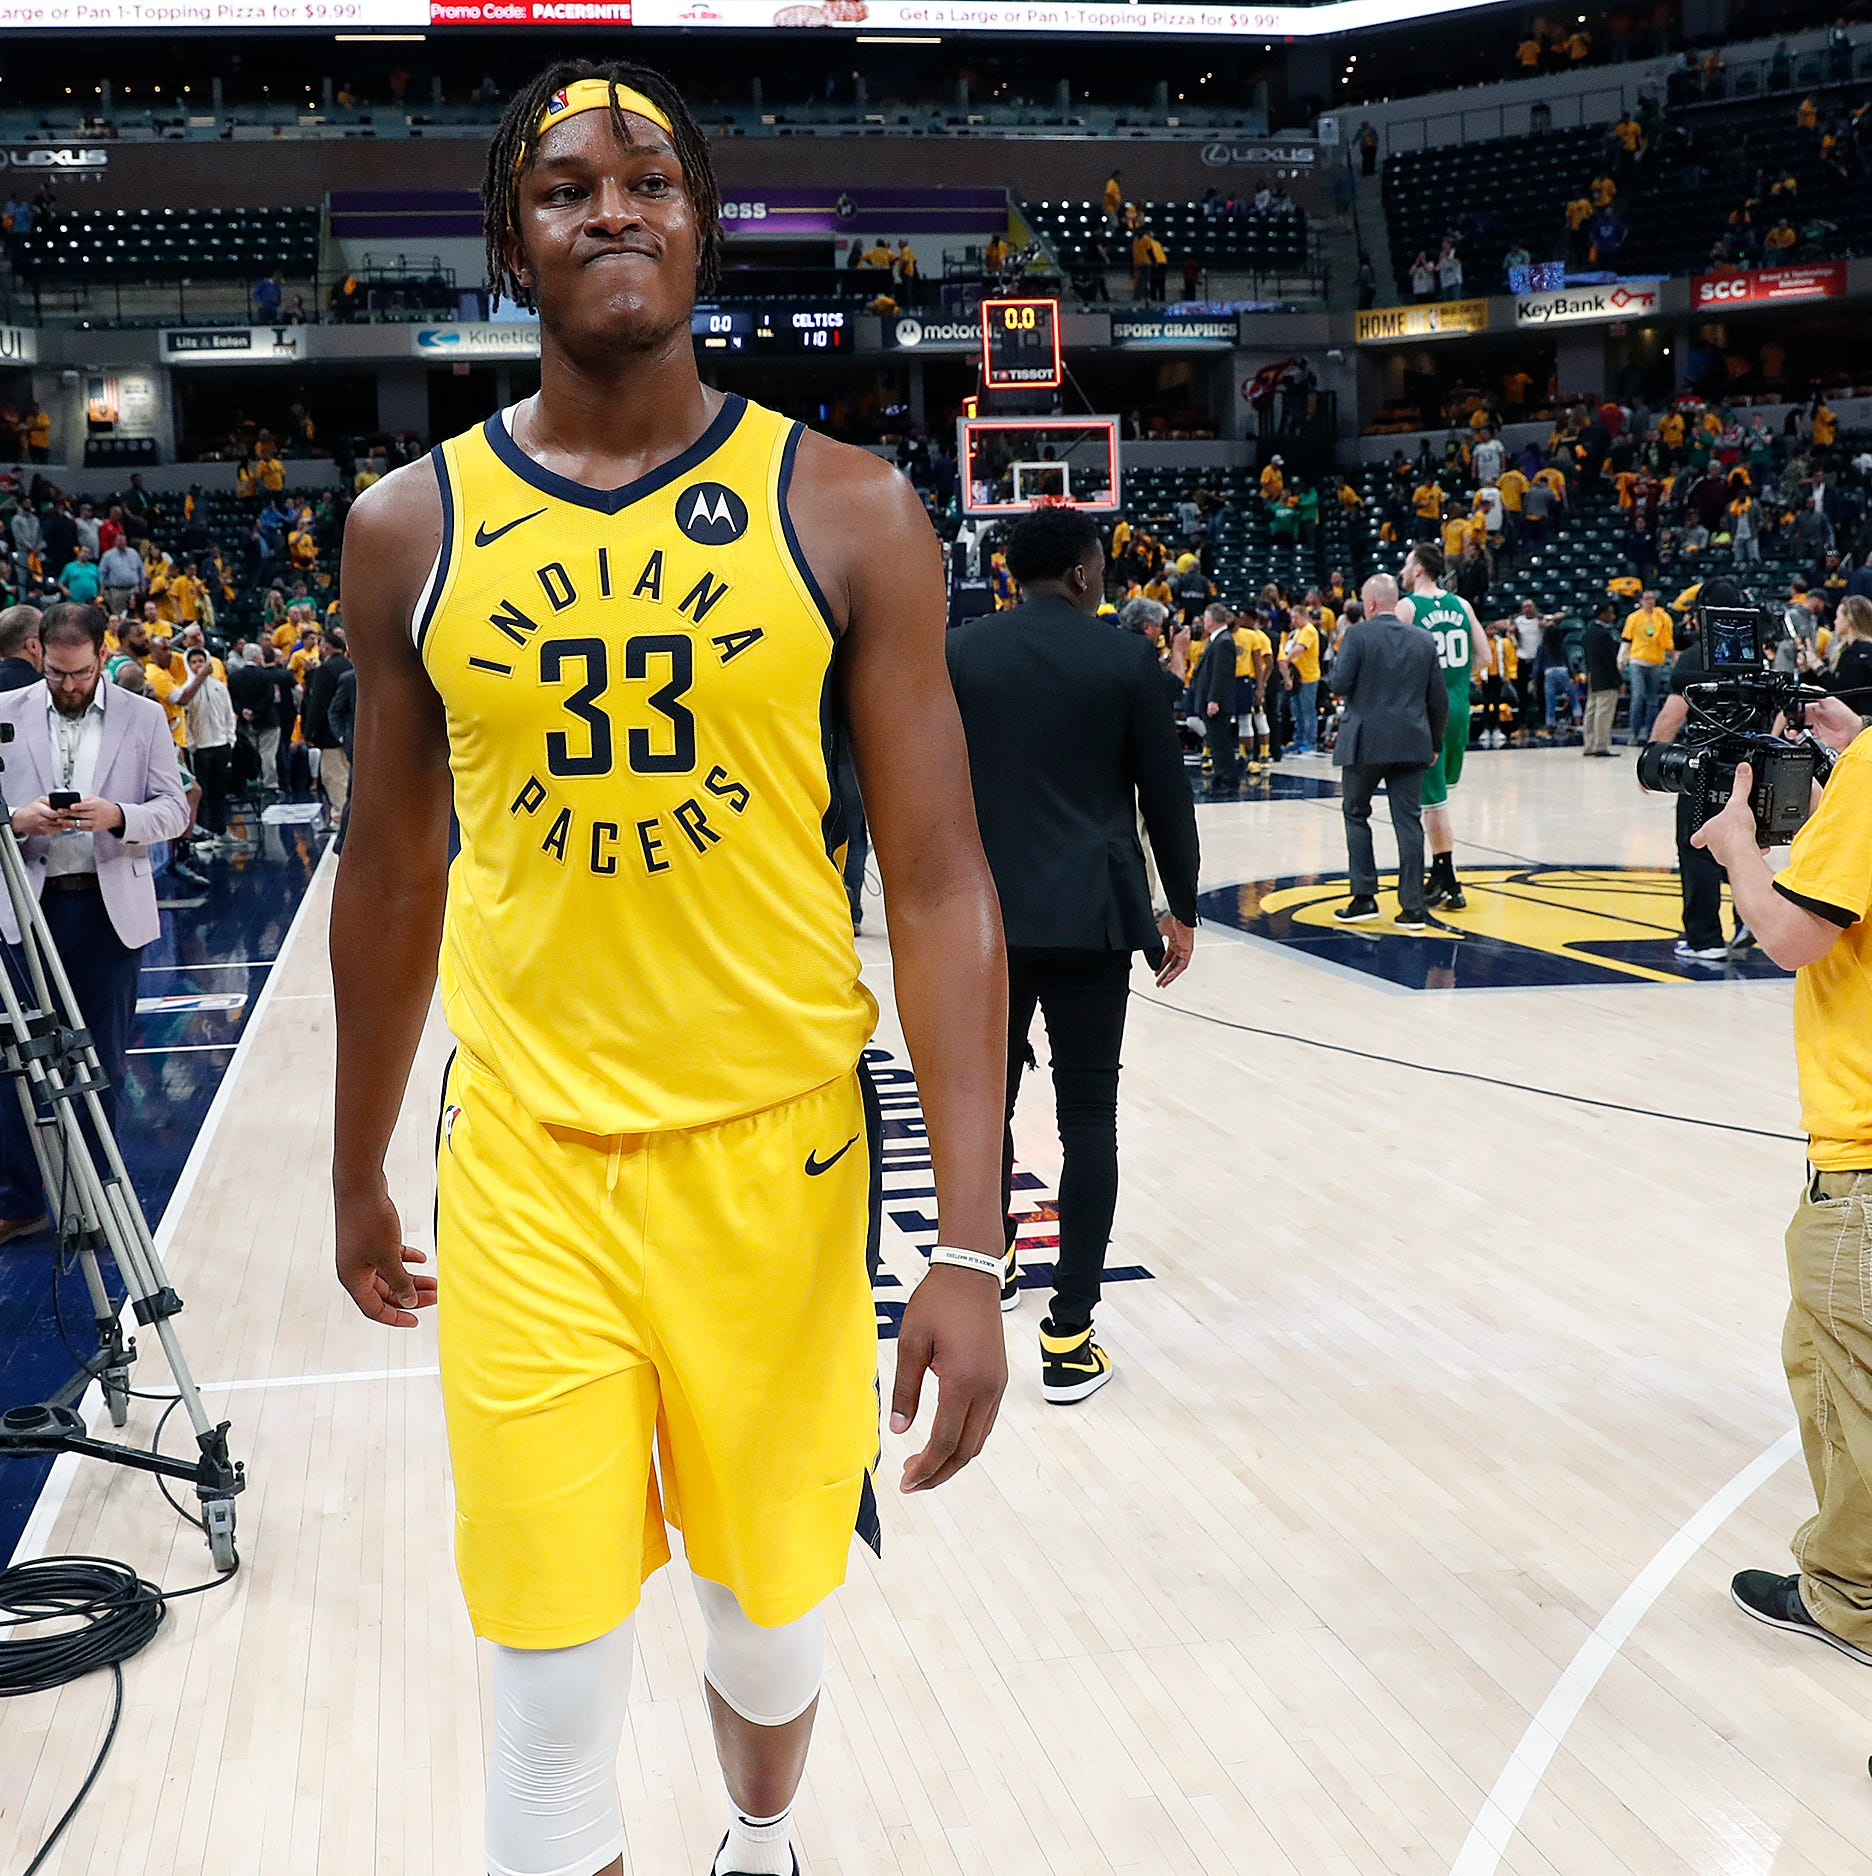 Pacers' center Myles Turner on All-Defensive team snub: 'Blatant Disrespect'